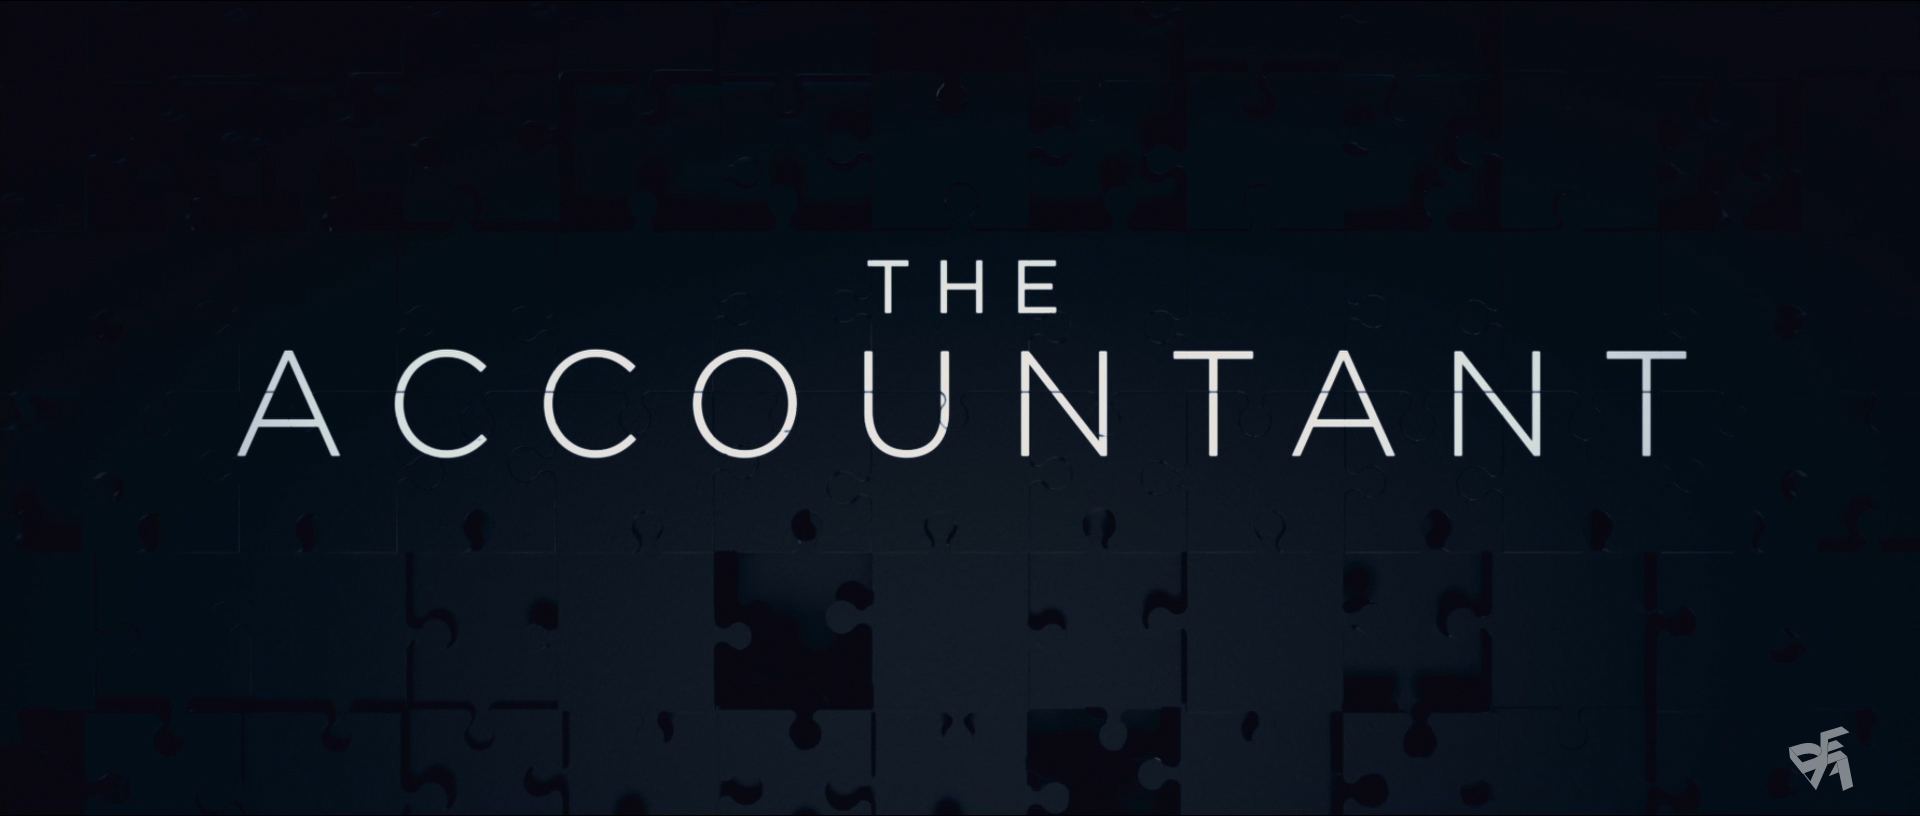 TheAccountant_TRAILERSTILL_07.jpg